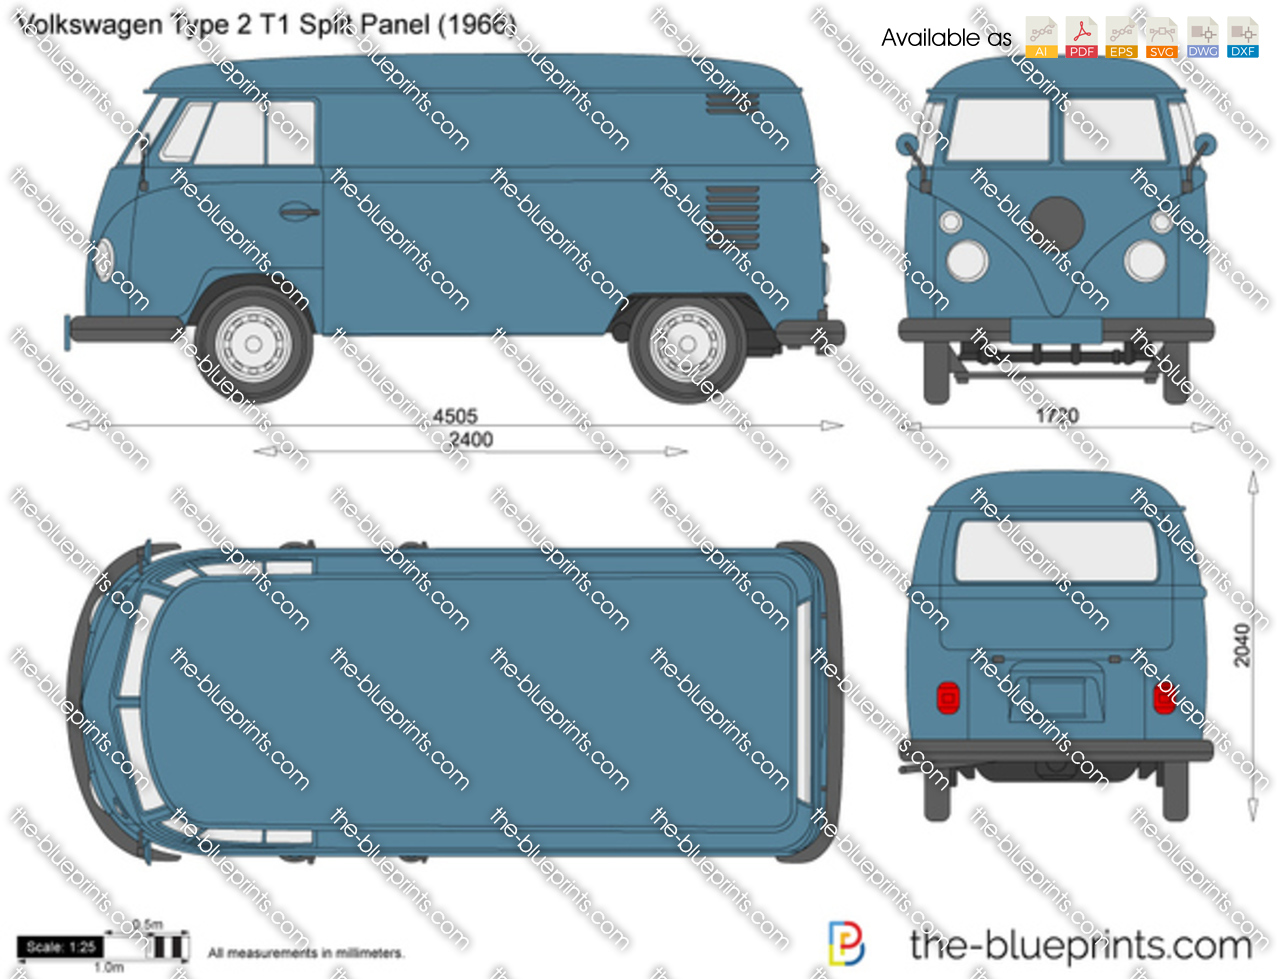 Volkswagen Type 2 T1 Split Panel 1959